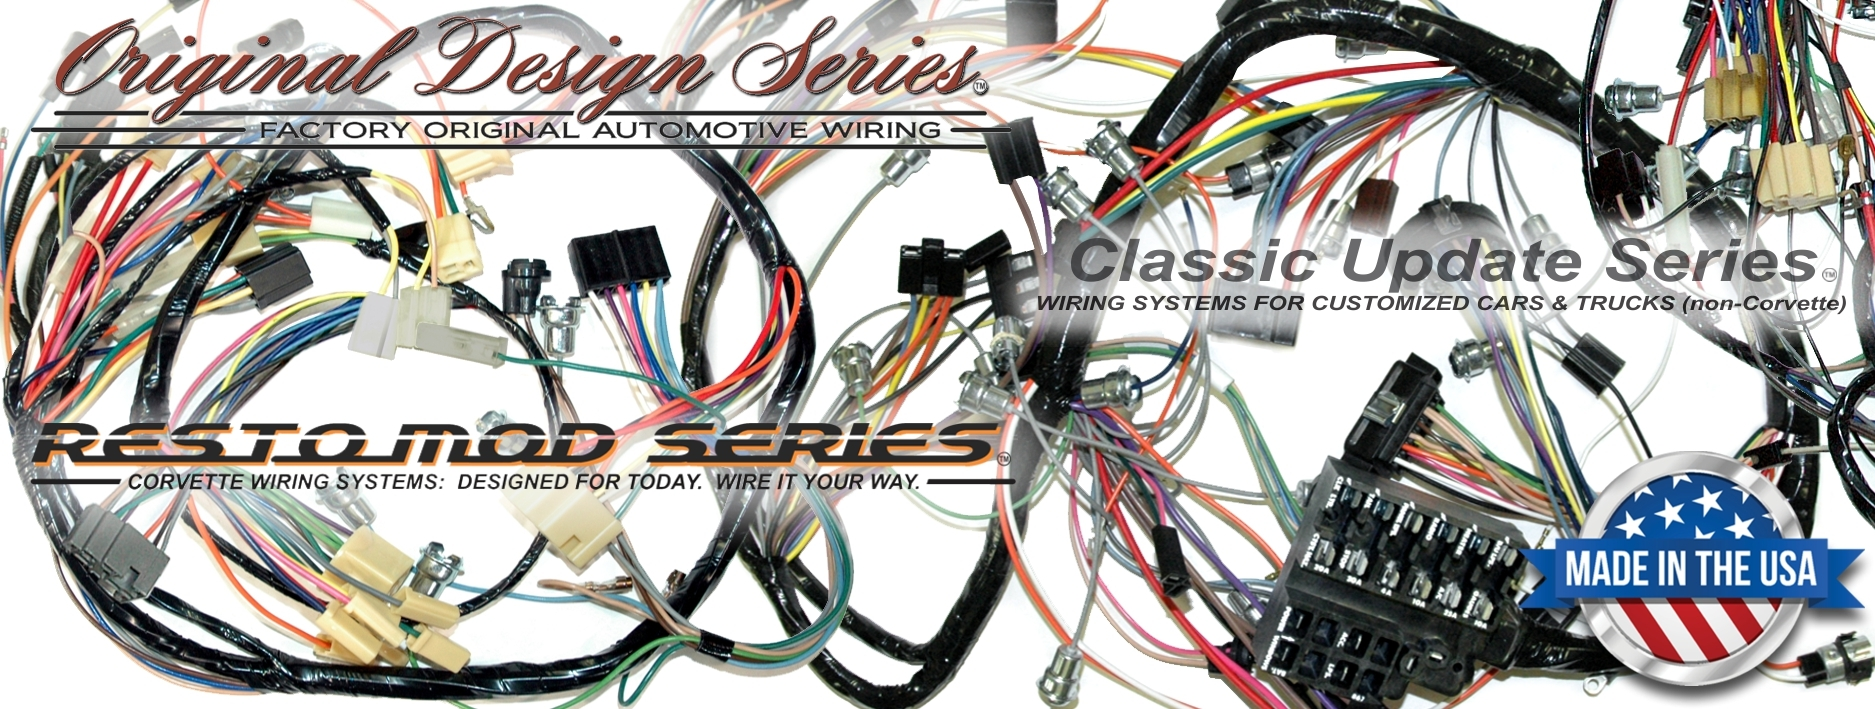 Exact Oem Reproduction Wiring Harnesses And Restomod Systems 1949 Ford Truck Diagram On 1948 F1 Harness Individual Complete